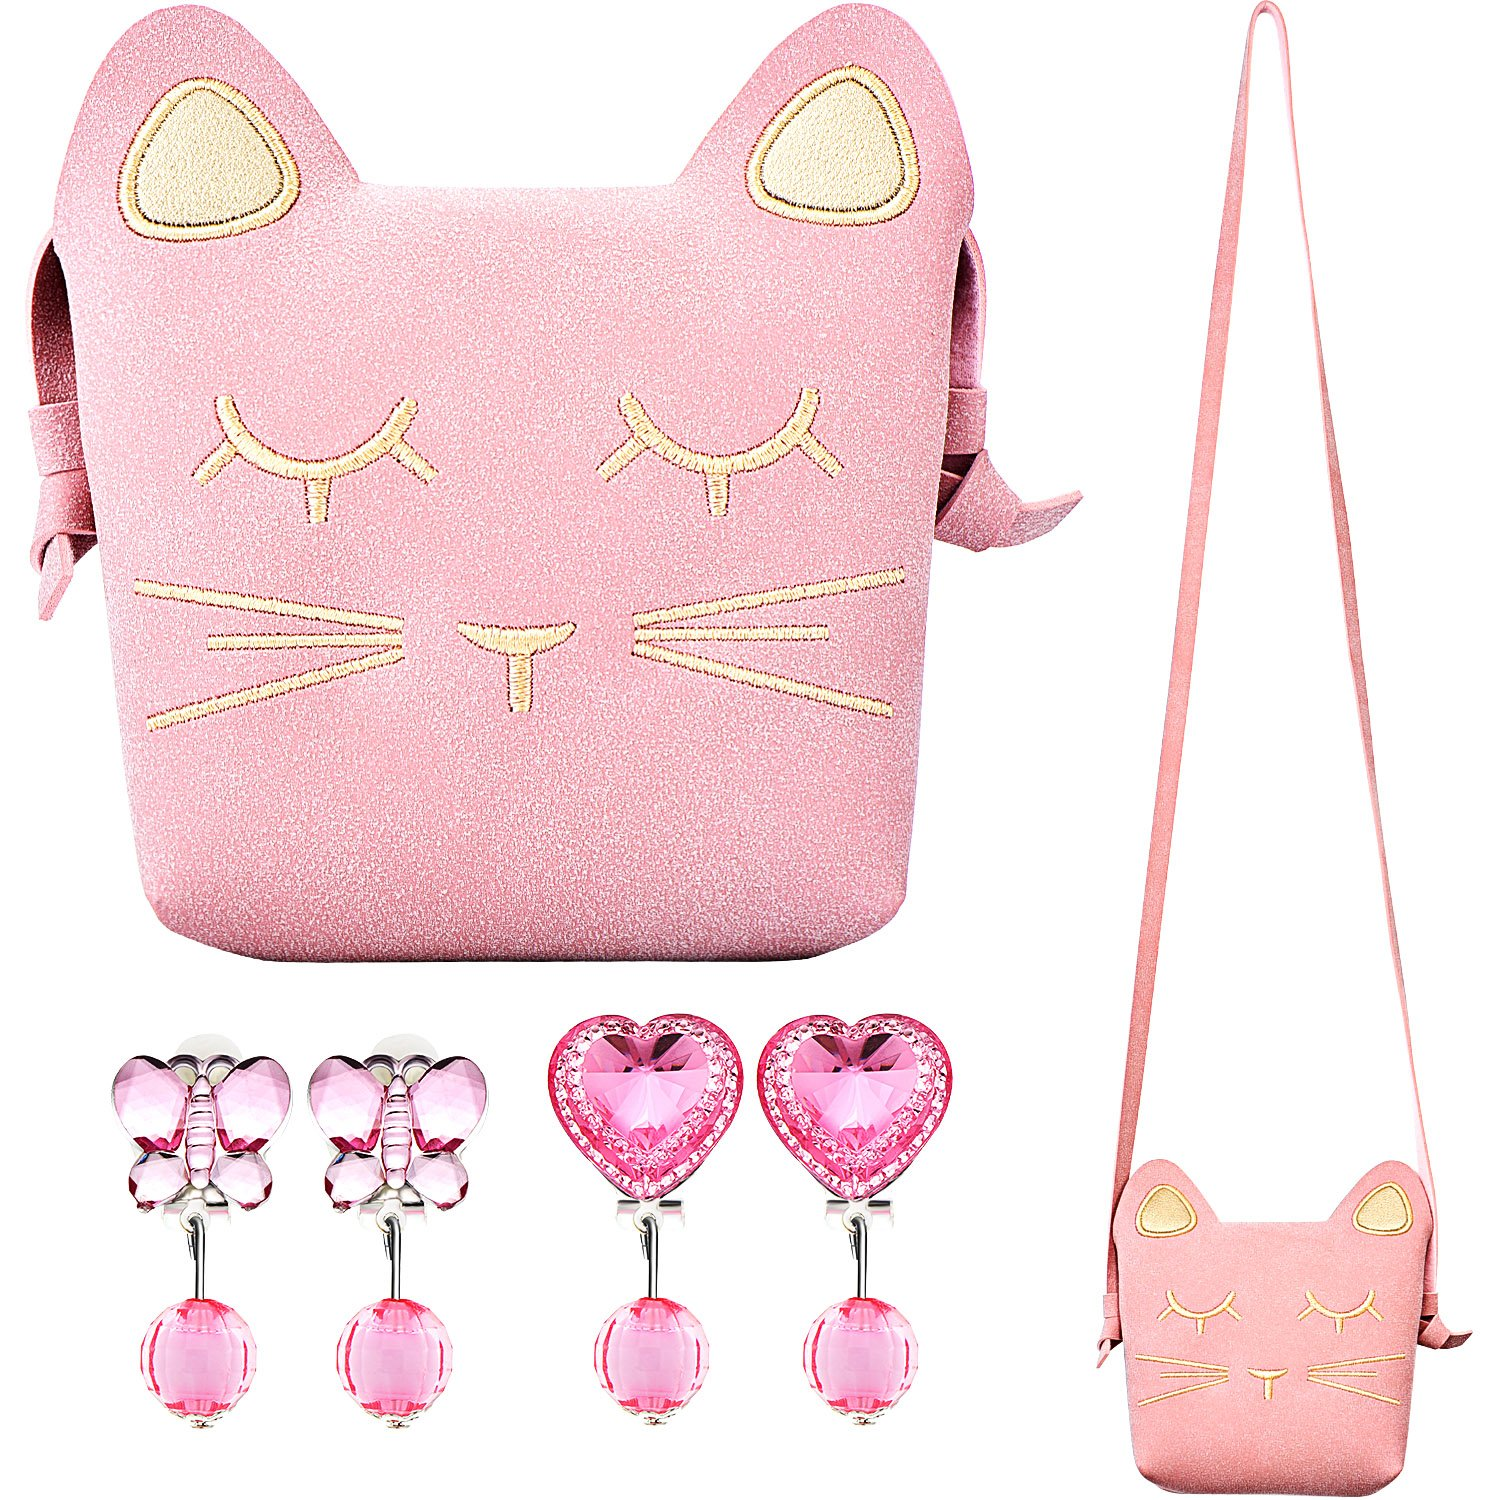 Maxdot Little Girls Purse Pink Cute Cat Crossbody Bag Handbag with 2 Pairs Clip on Earrings Jewelry for Kids and Toddlers